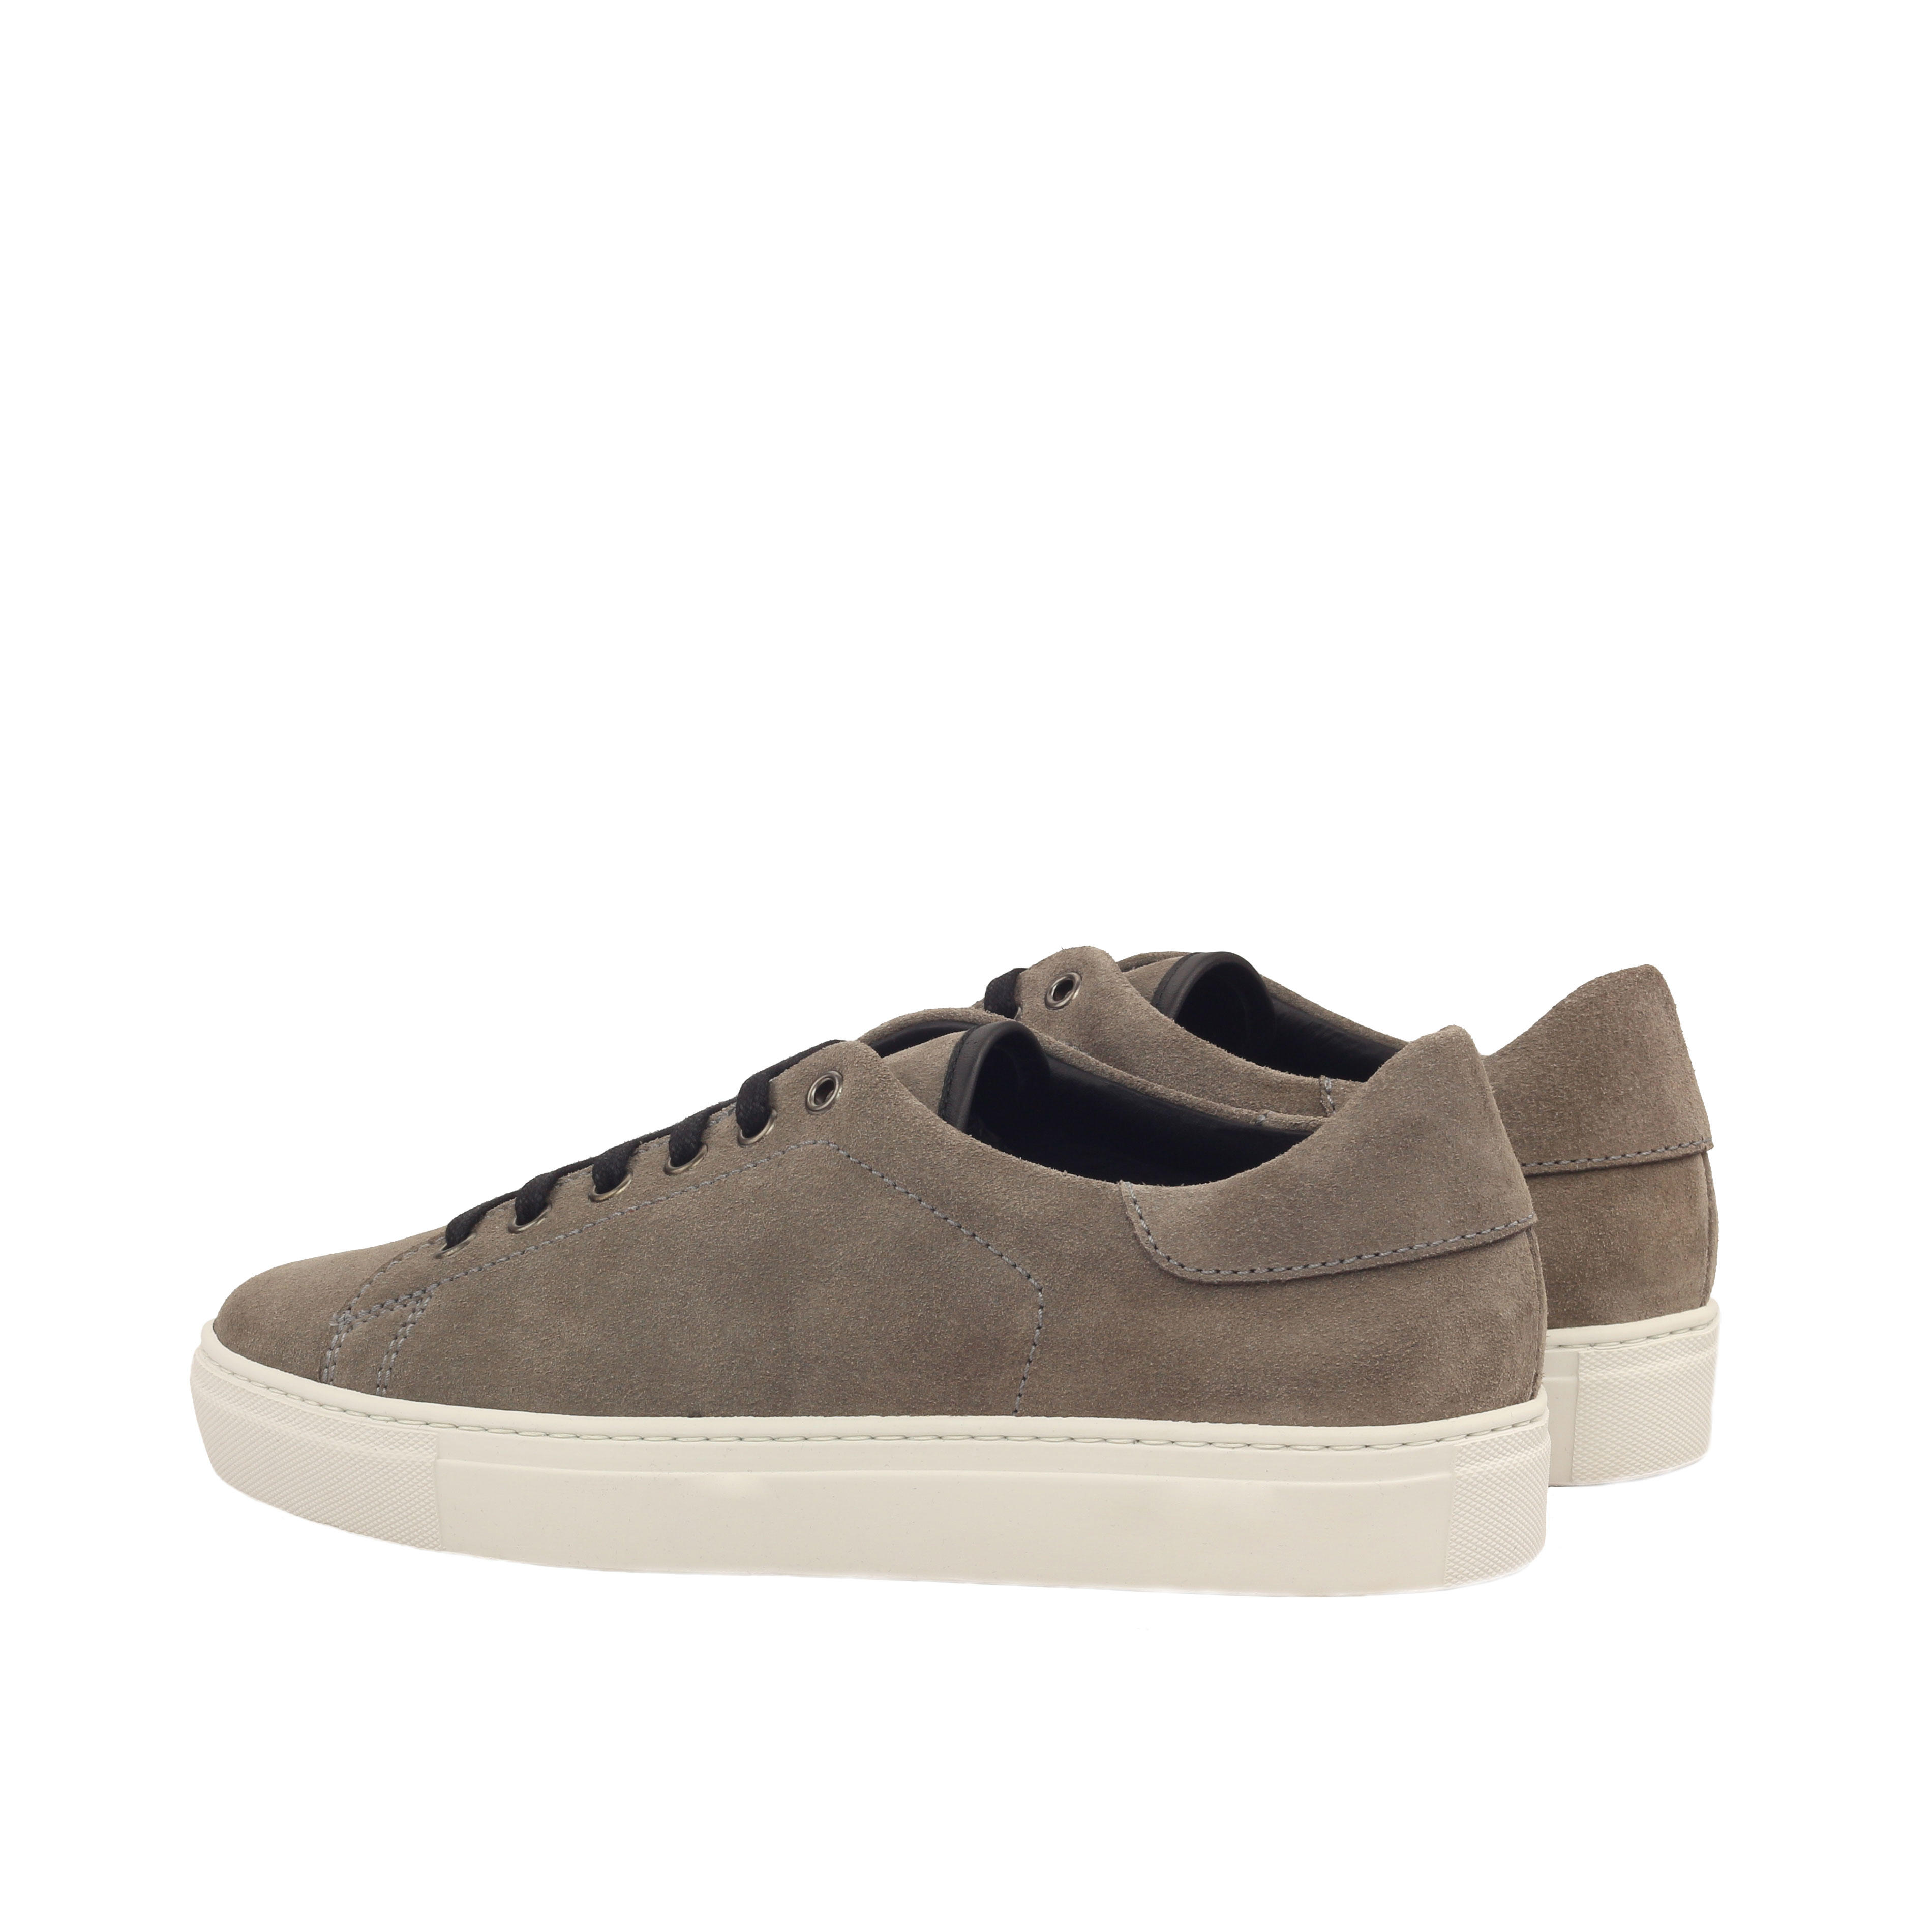 MANOR OF LONDON 'The Perry' Grey Suede Tennis Trainer Luxury Custom Initials Monogrammed Back Side View